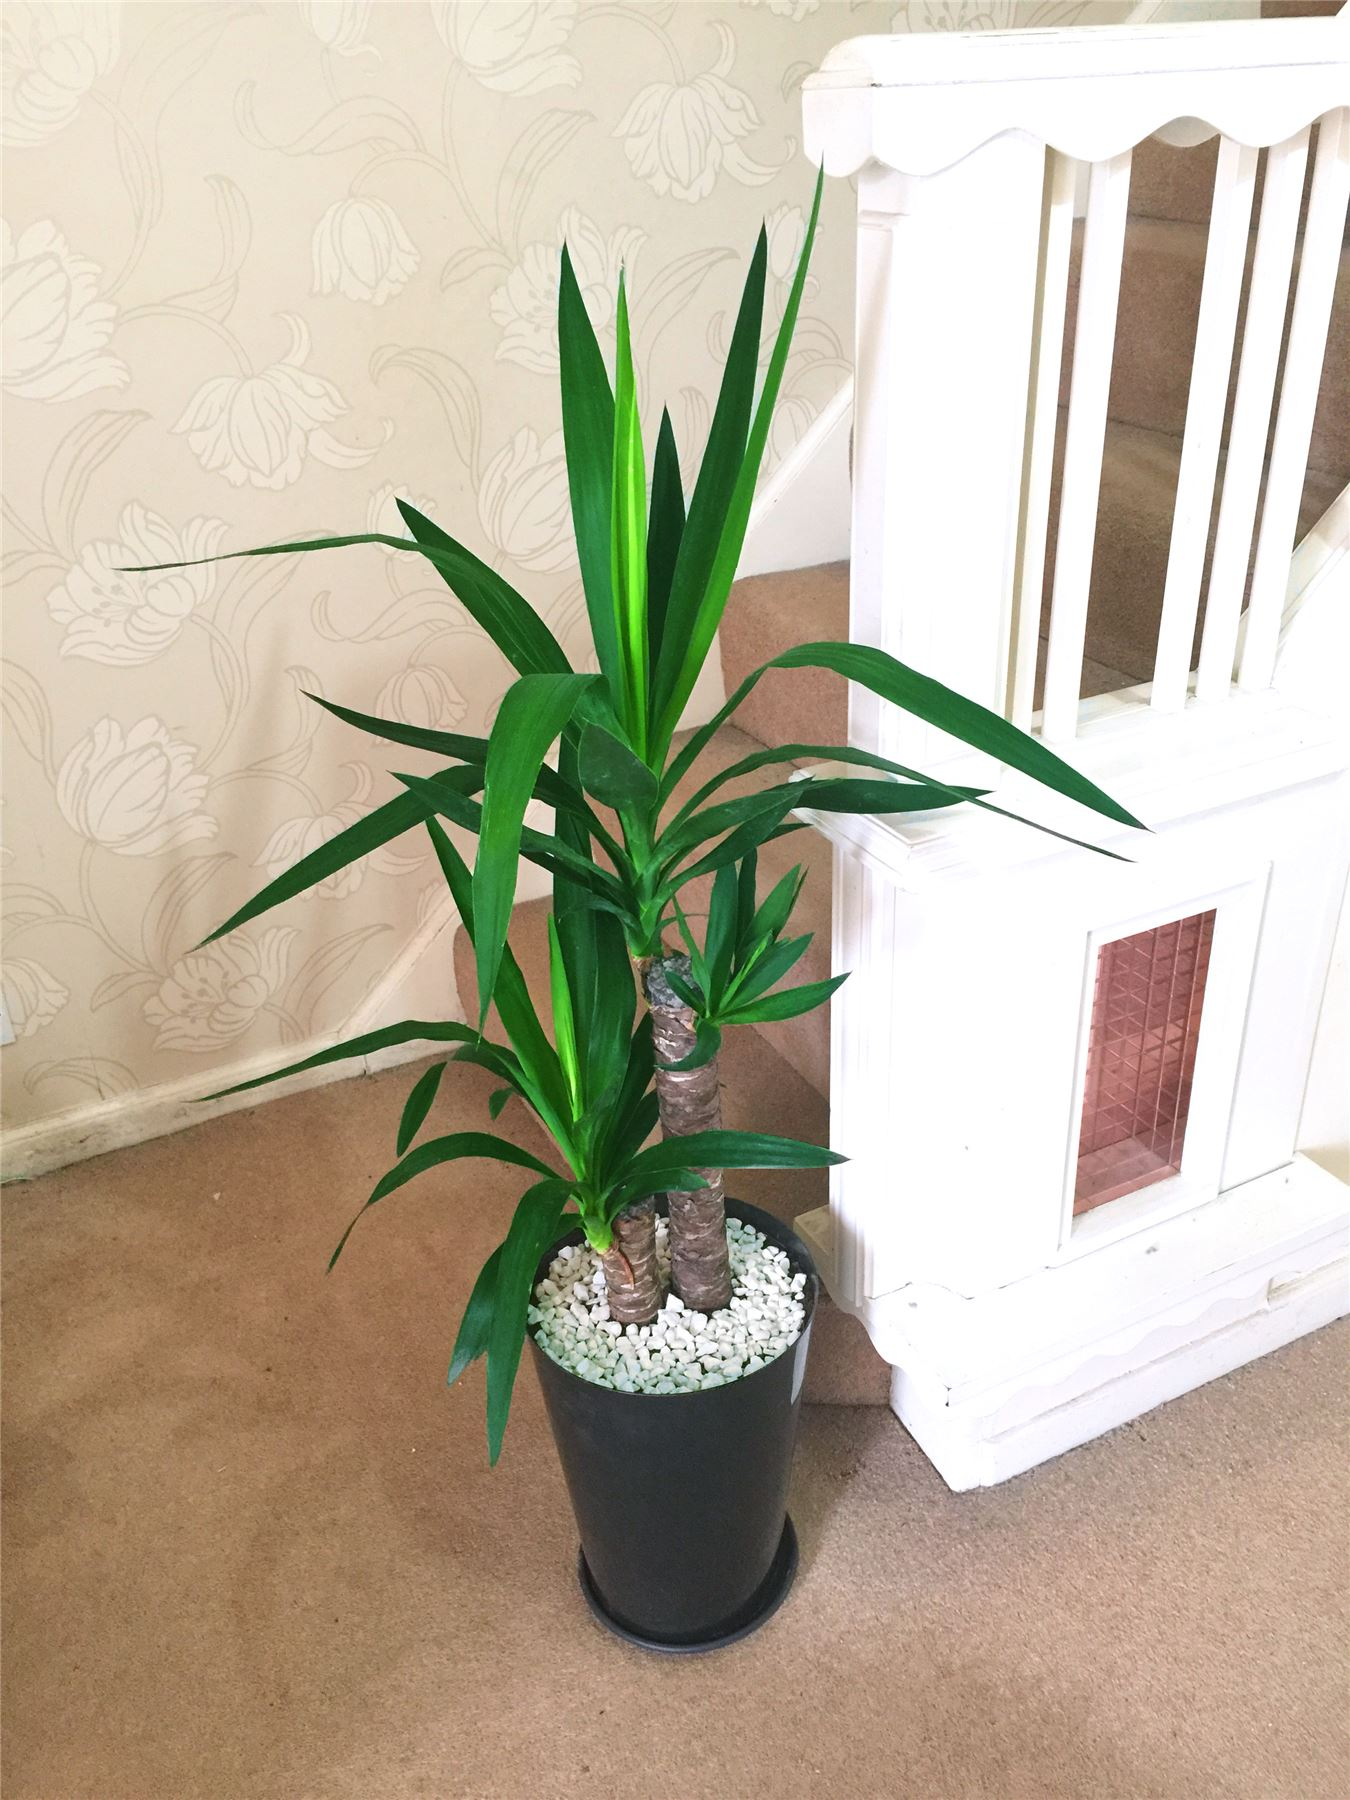 Large Indoor House Plants For Sale 1 Large Evergreen Office House Plant Indoor Tree In Gloss